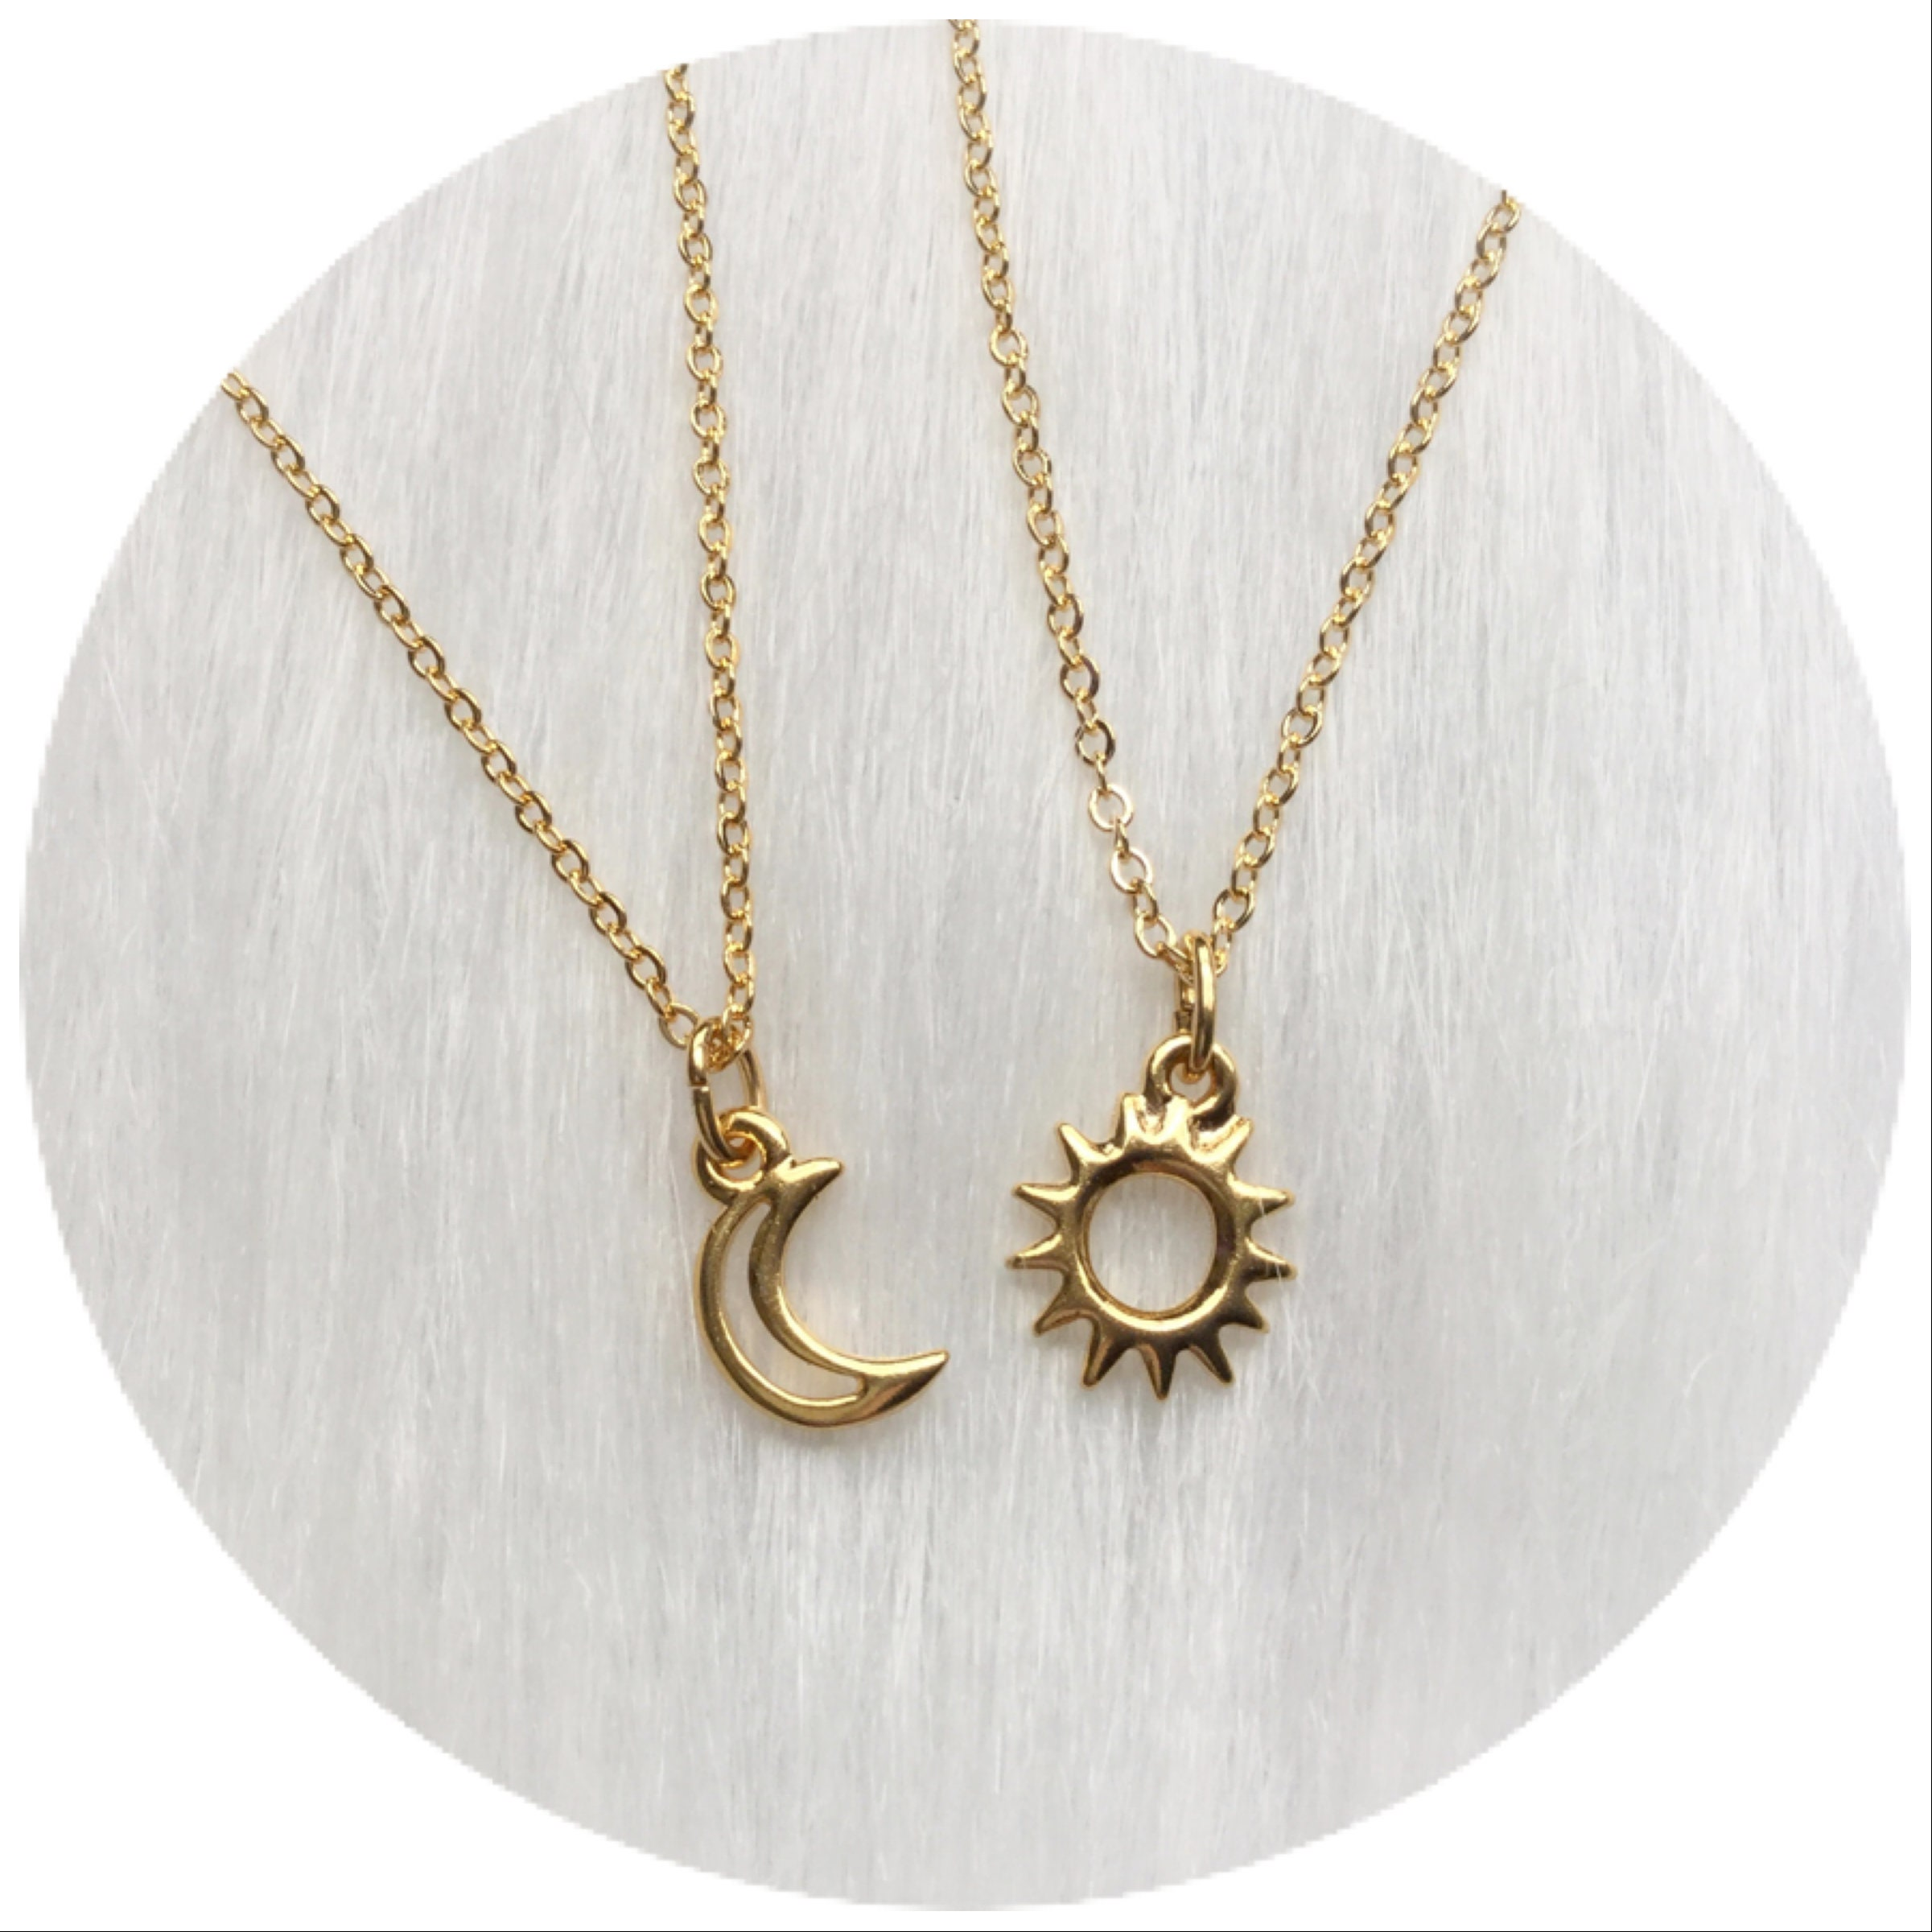 dipped let necklace light gold sun shine moon your charm bright